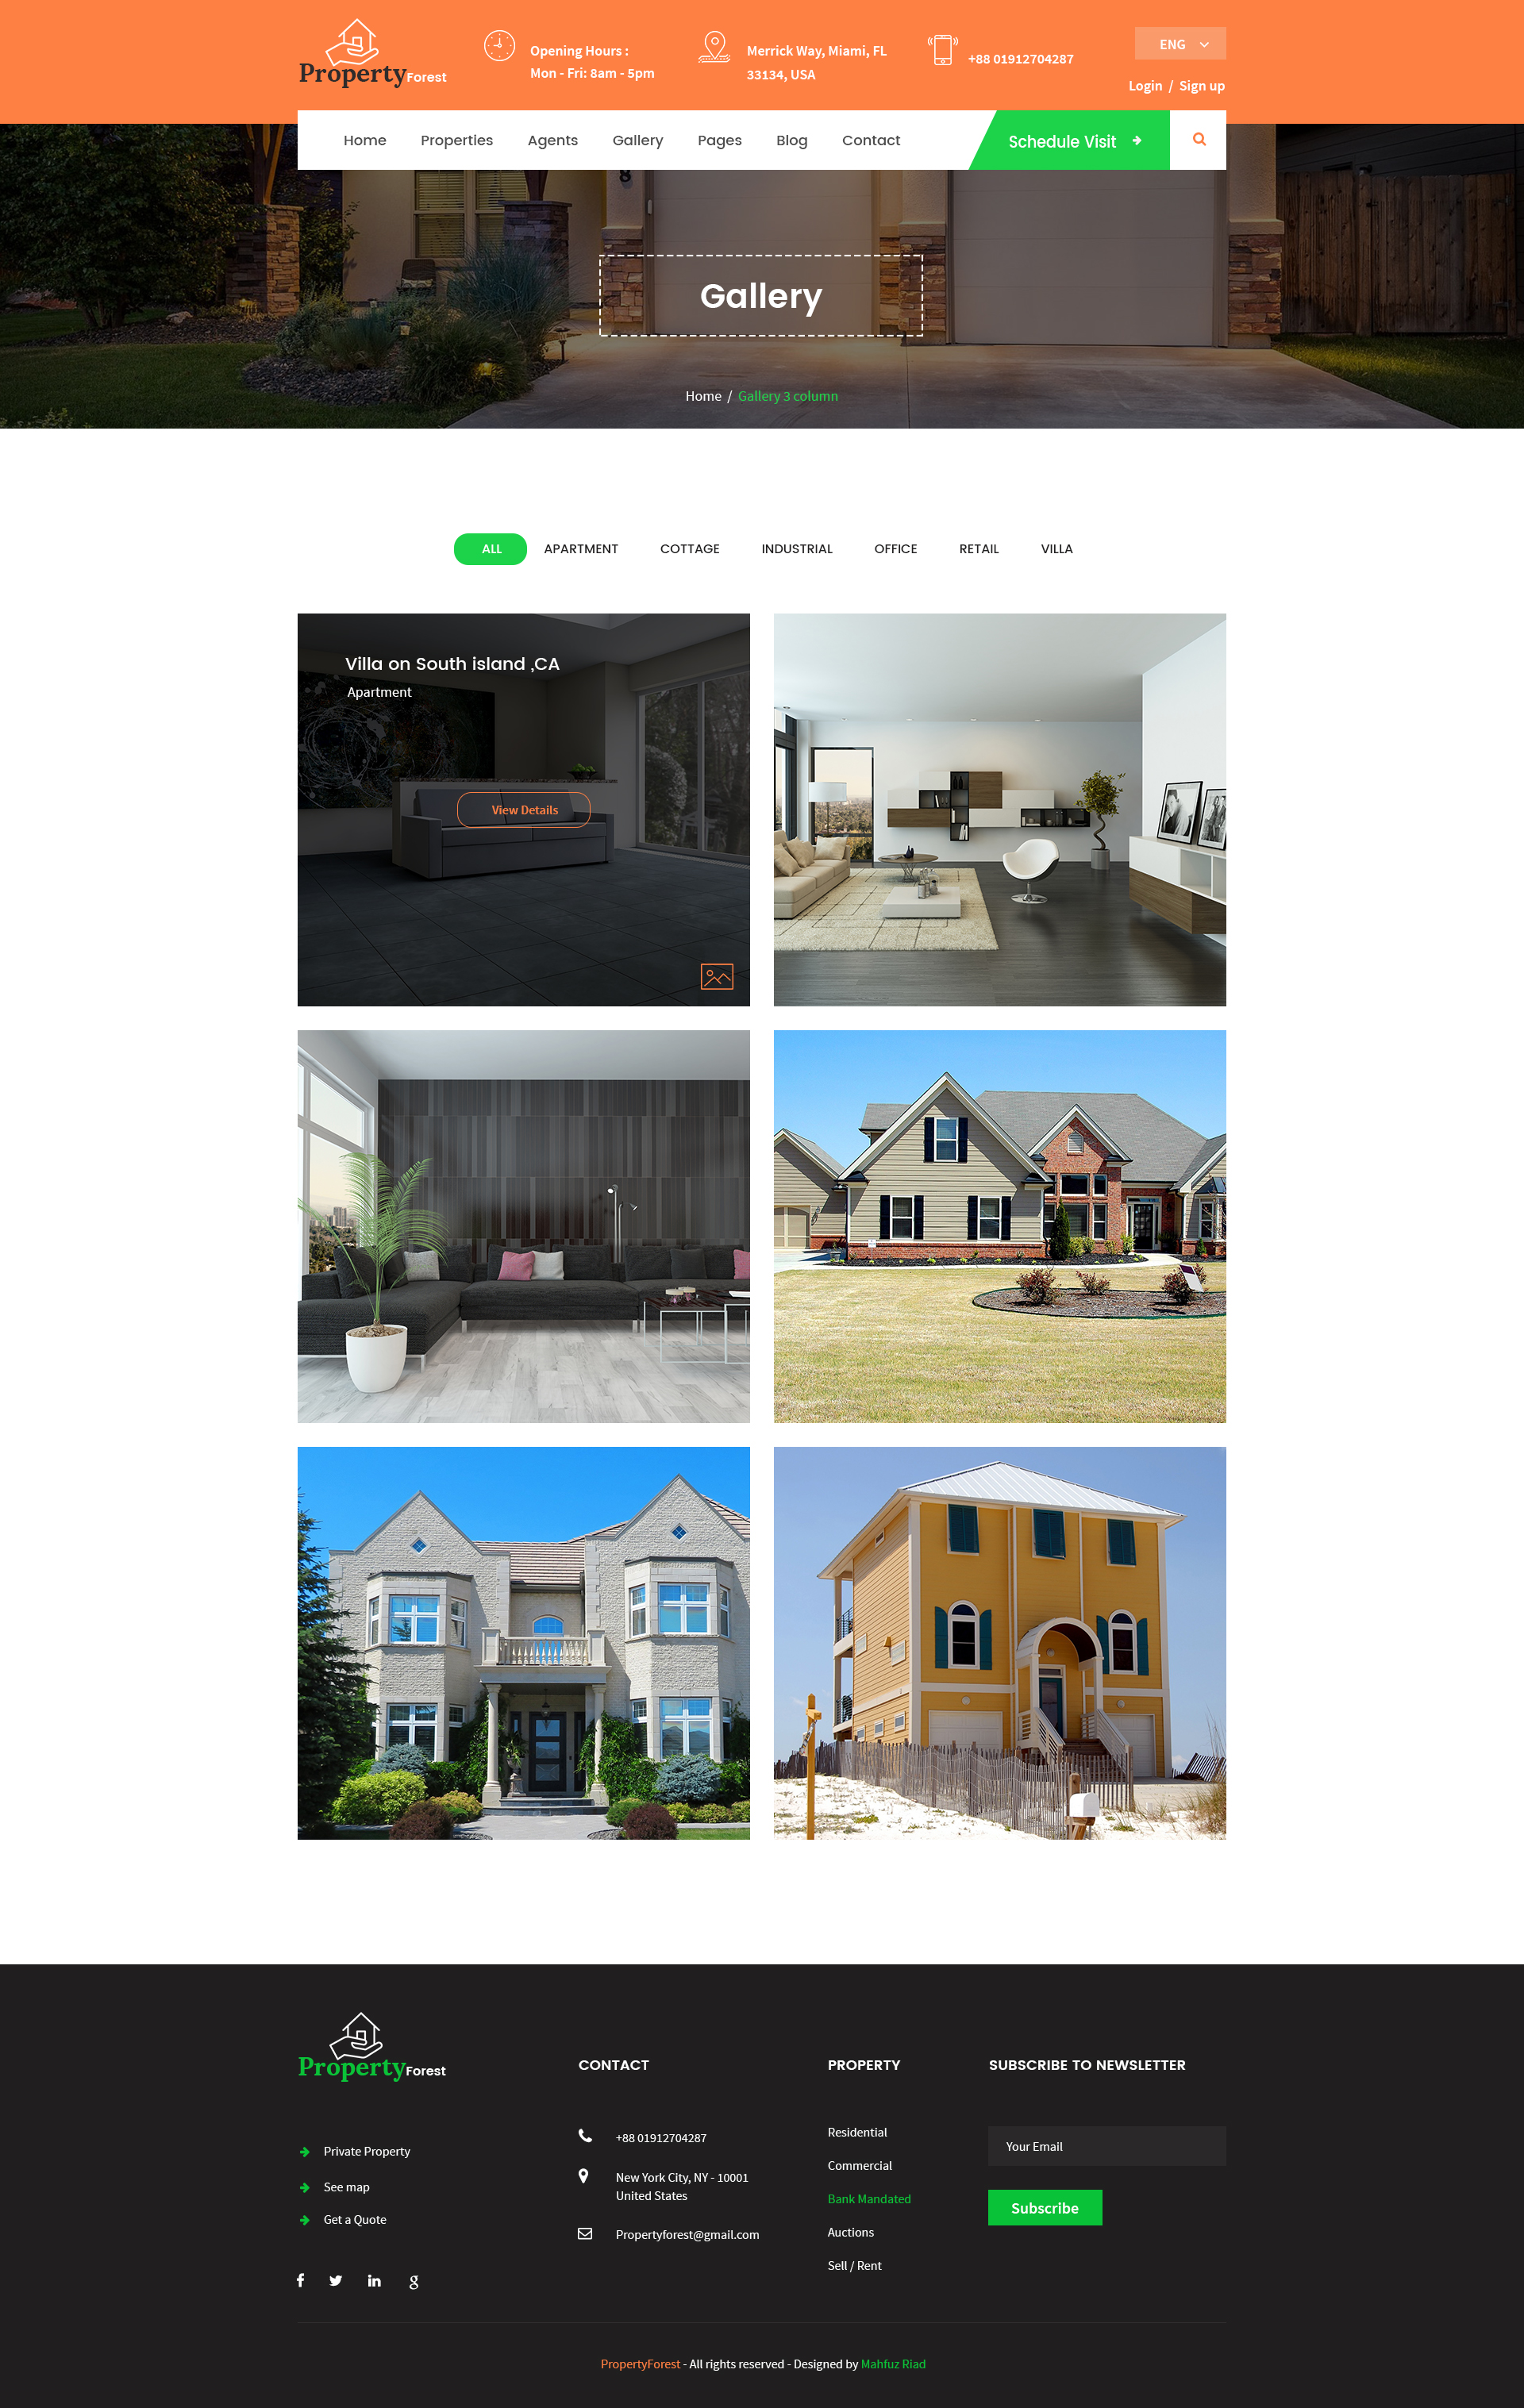 Real estate and property listing template by templatemr themeforest real estate and property listing template maxwellsz